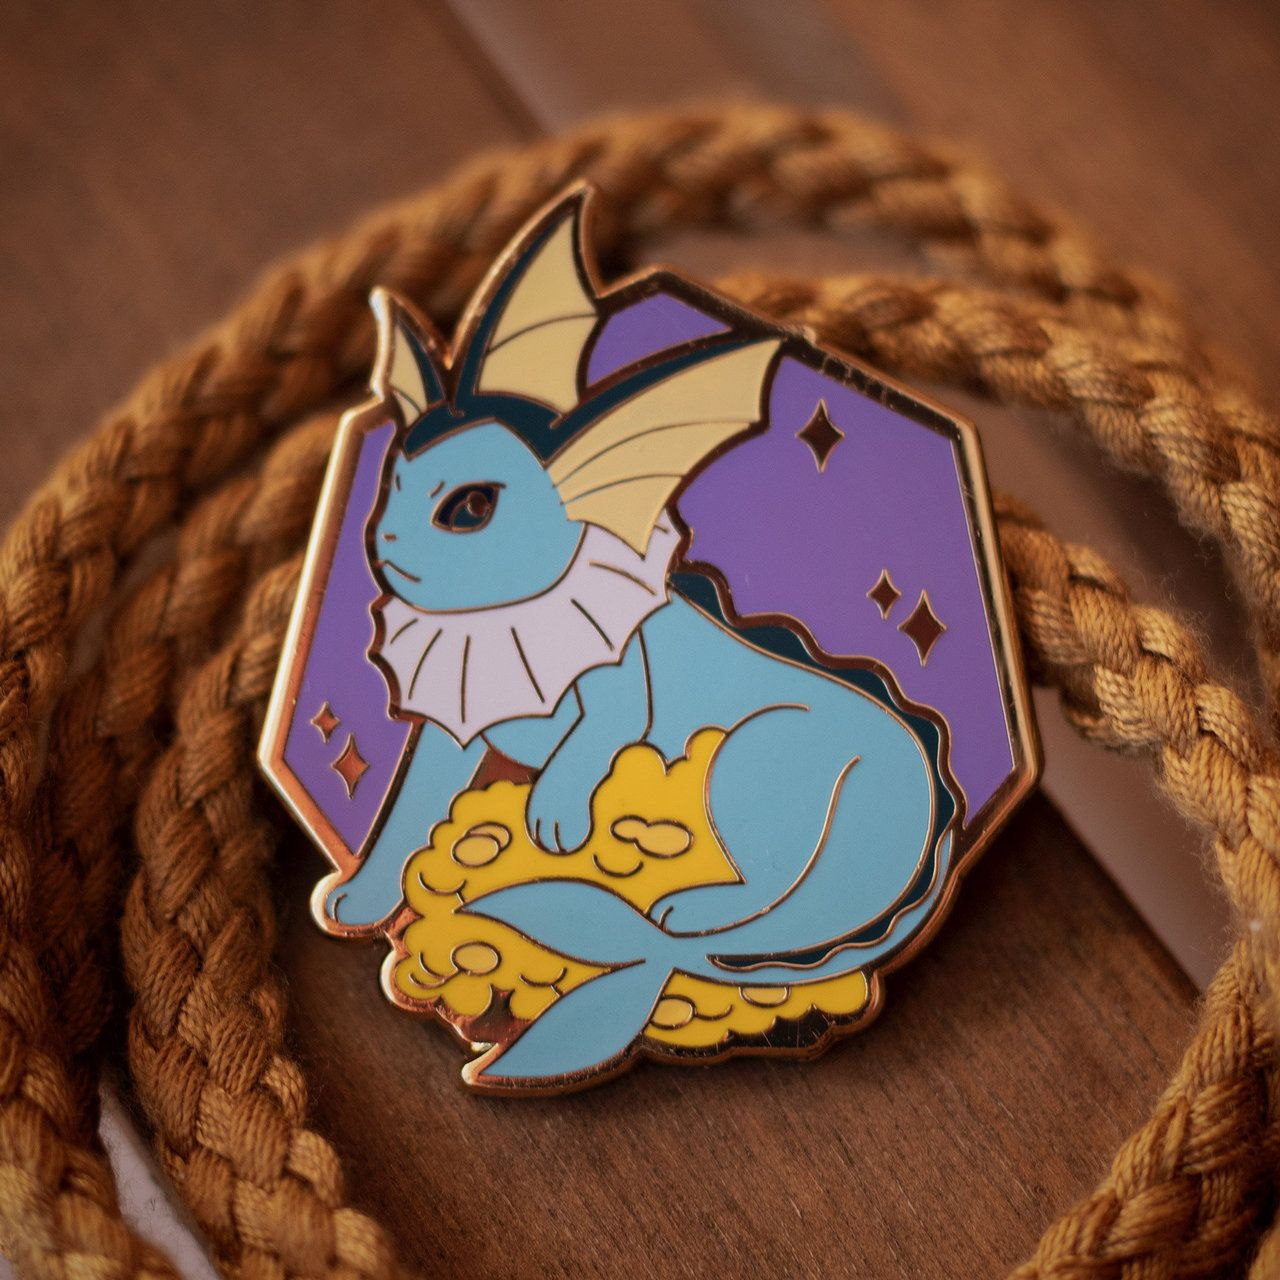 Pokemon Pins Made By Thisispinsane Advance Ampharos Anime Art Cartoons Cute Eevee Eeveelutions Etsy Gameboy Games Gami